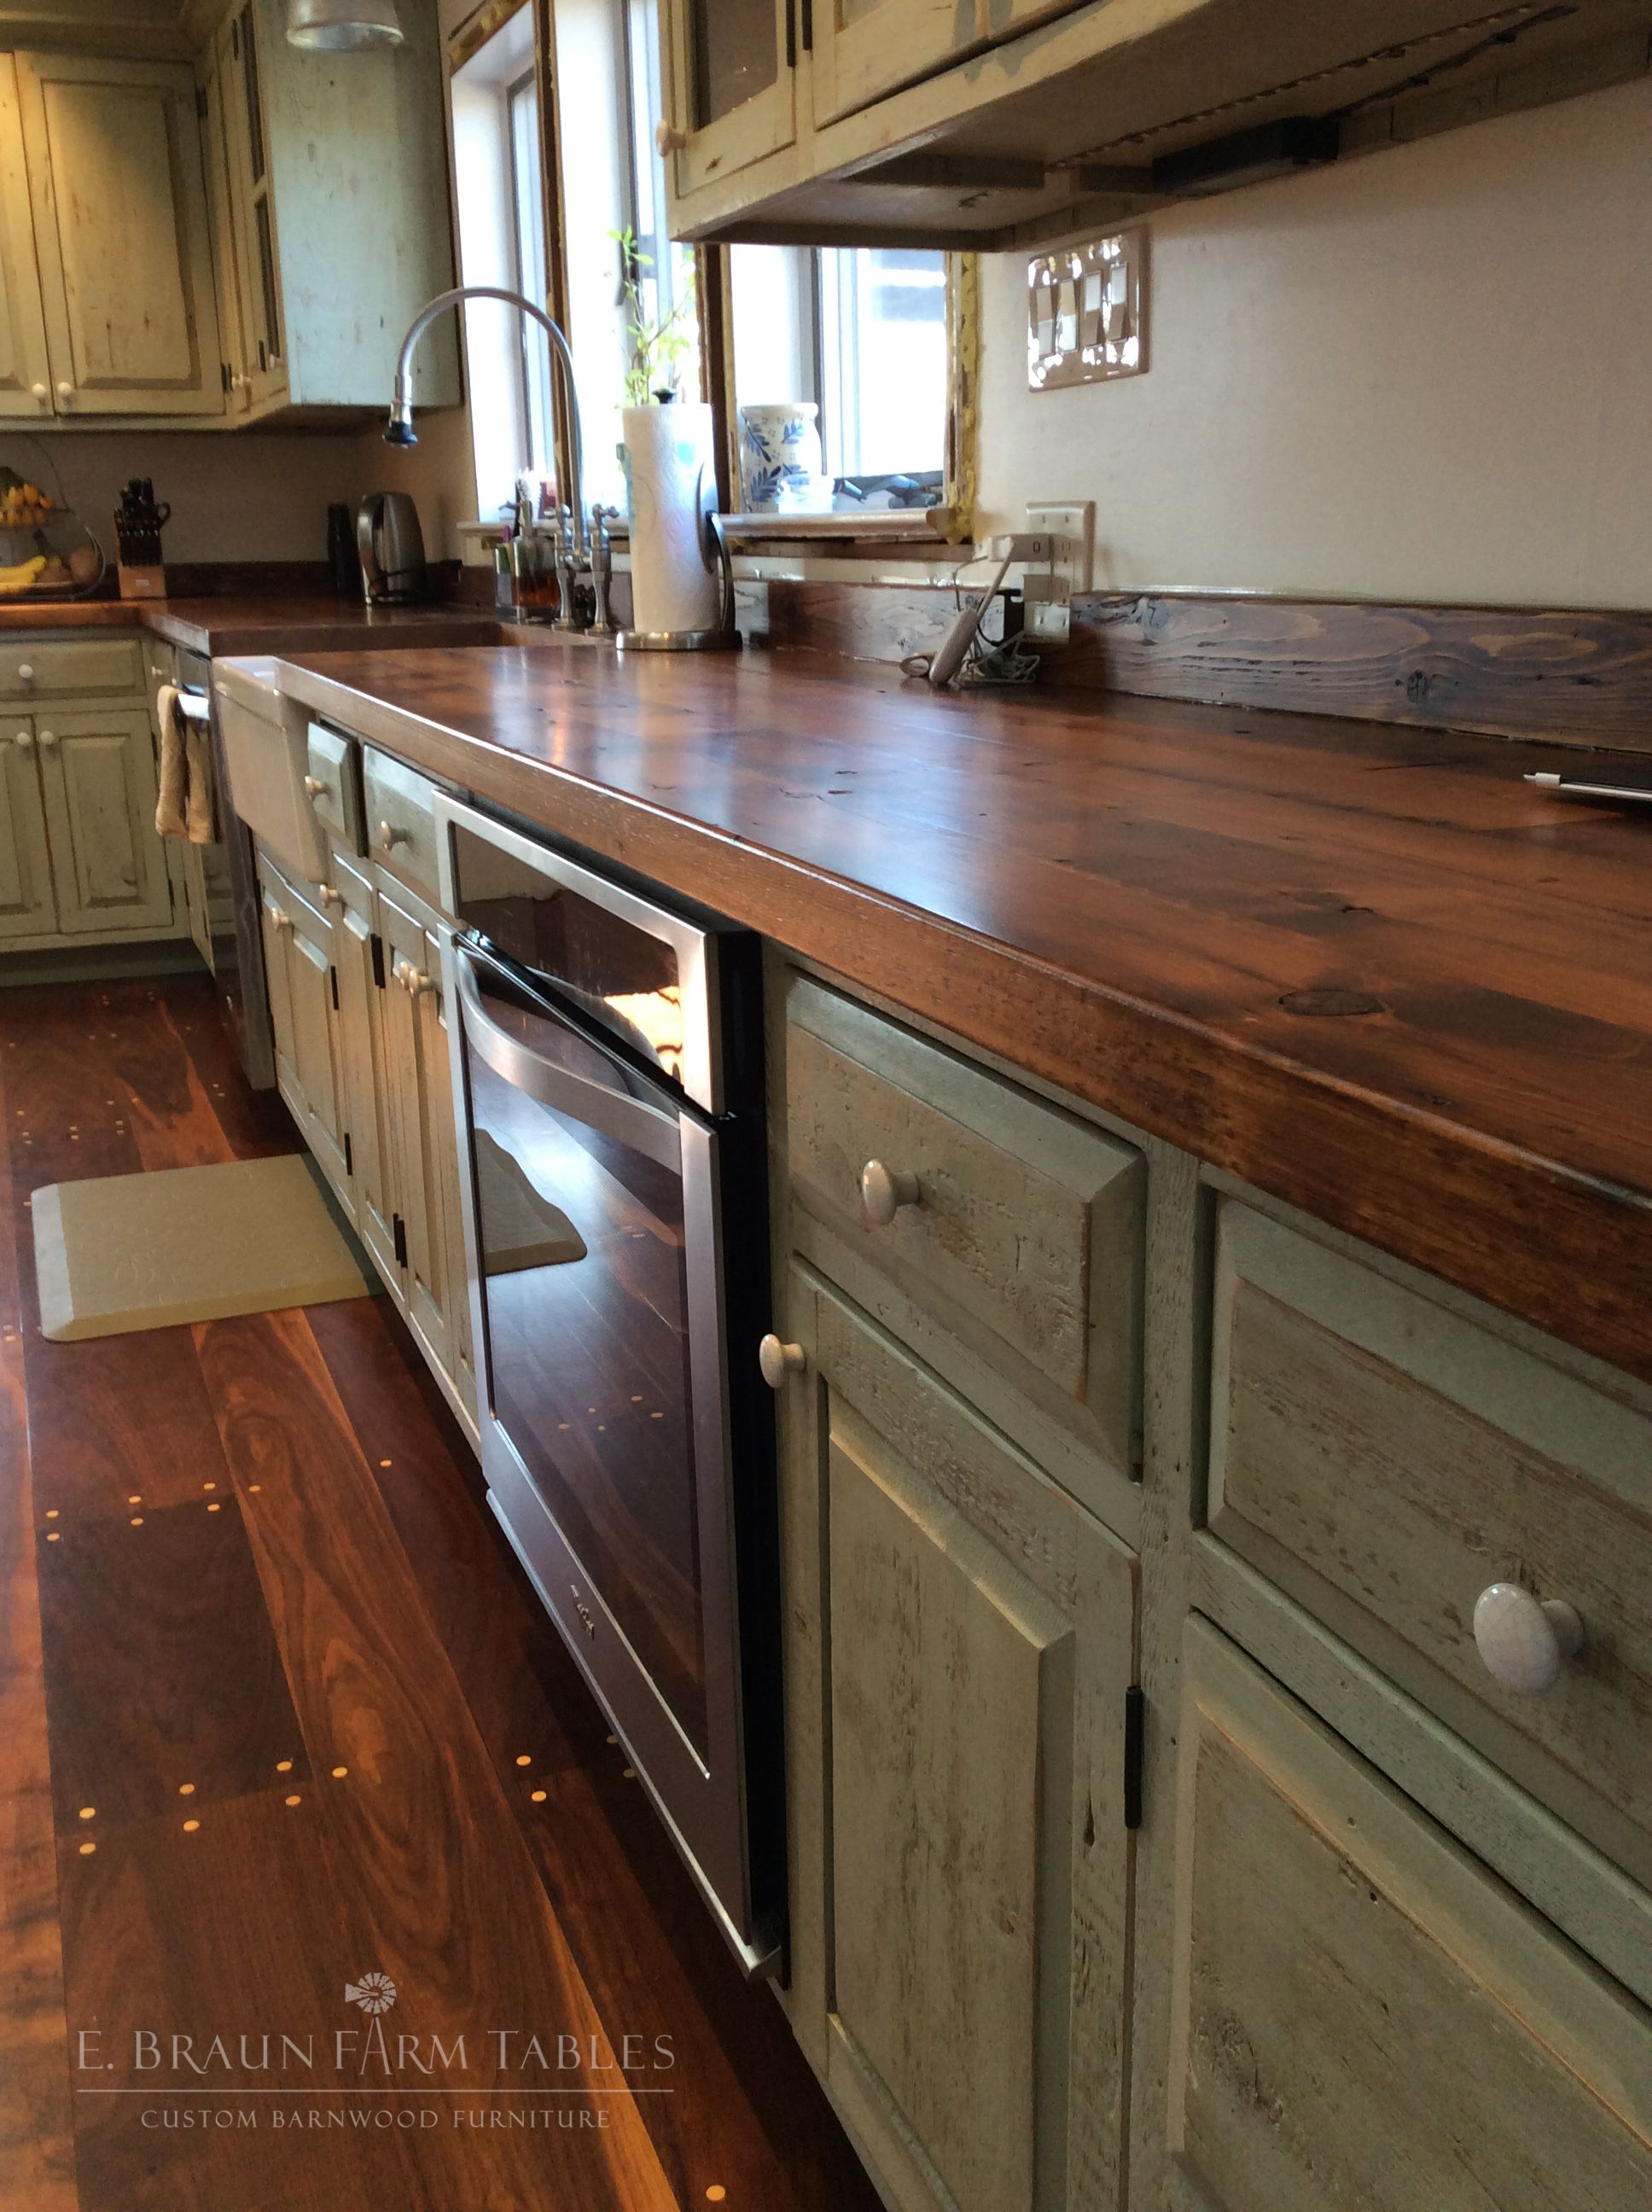 Reclaimed Barn Wood From Dismantled Barns And Farm Structures Dating From The 1800 S To Earl Farmhouse Kitchen Countertops Kitchen Countertops Kitchen Remodel